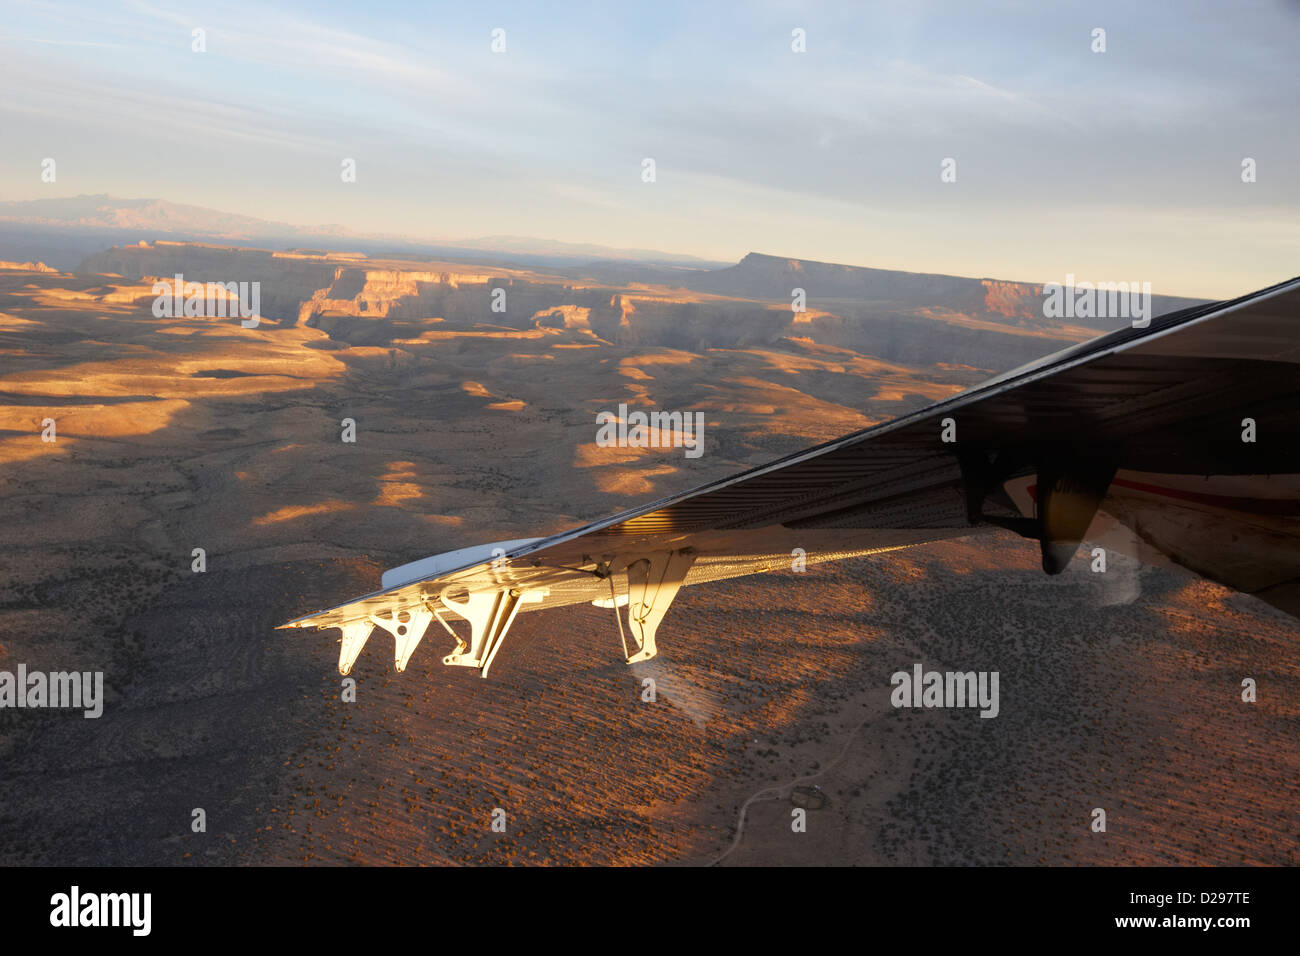 flying over land approaches to the rim of the grand canyon Arizona USA - Stock Image